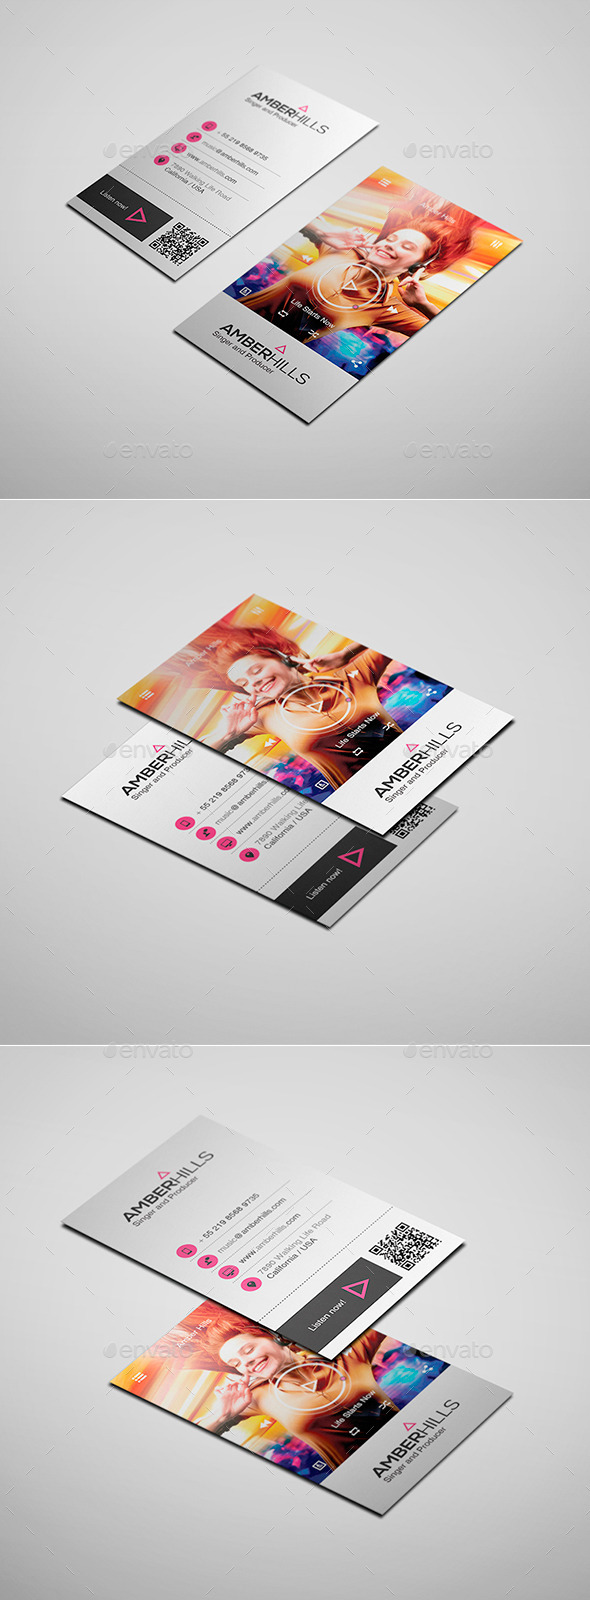 GraphicRiver Business Card Vol 11 11581963